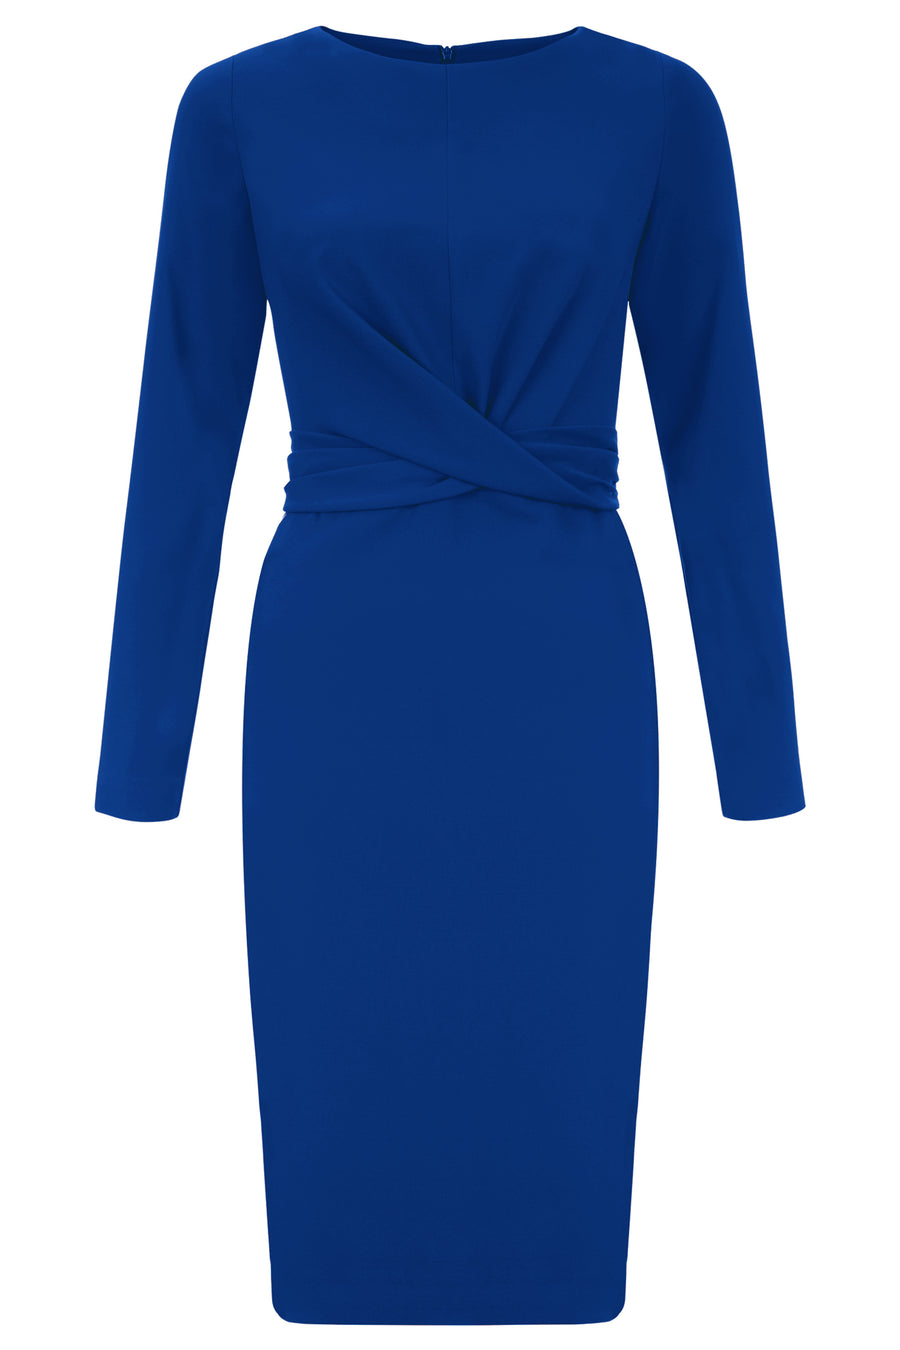 Cliveden Cobalt Dress